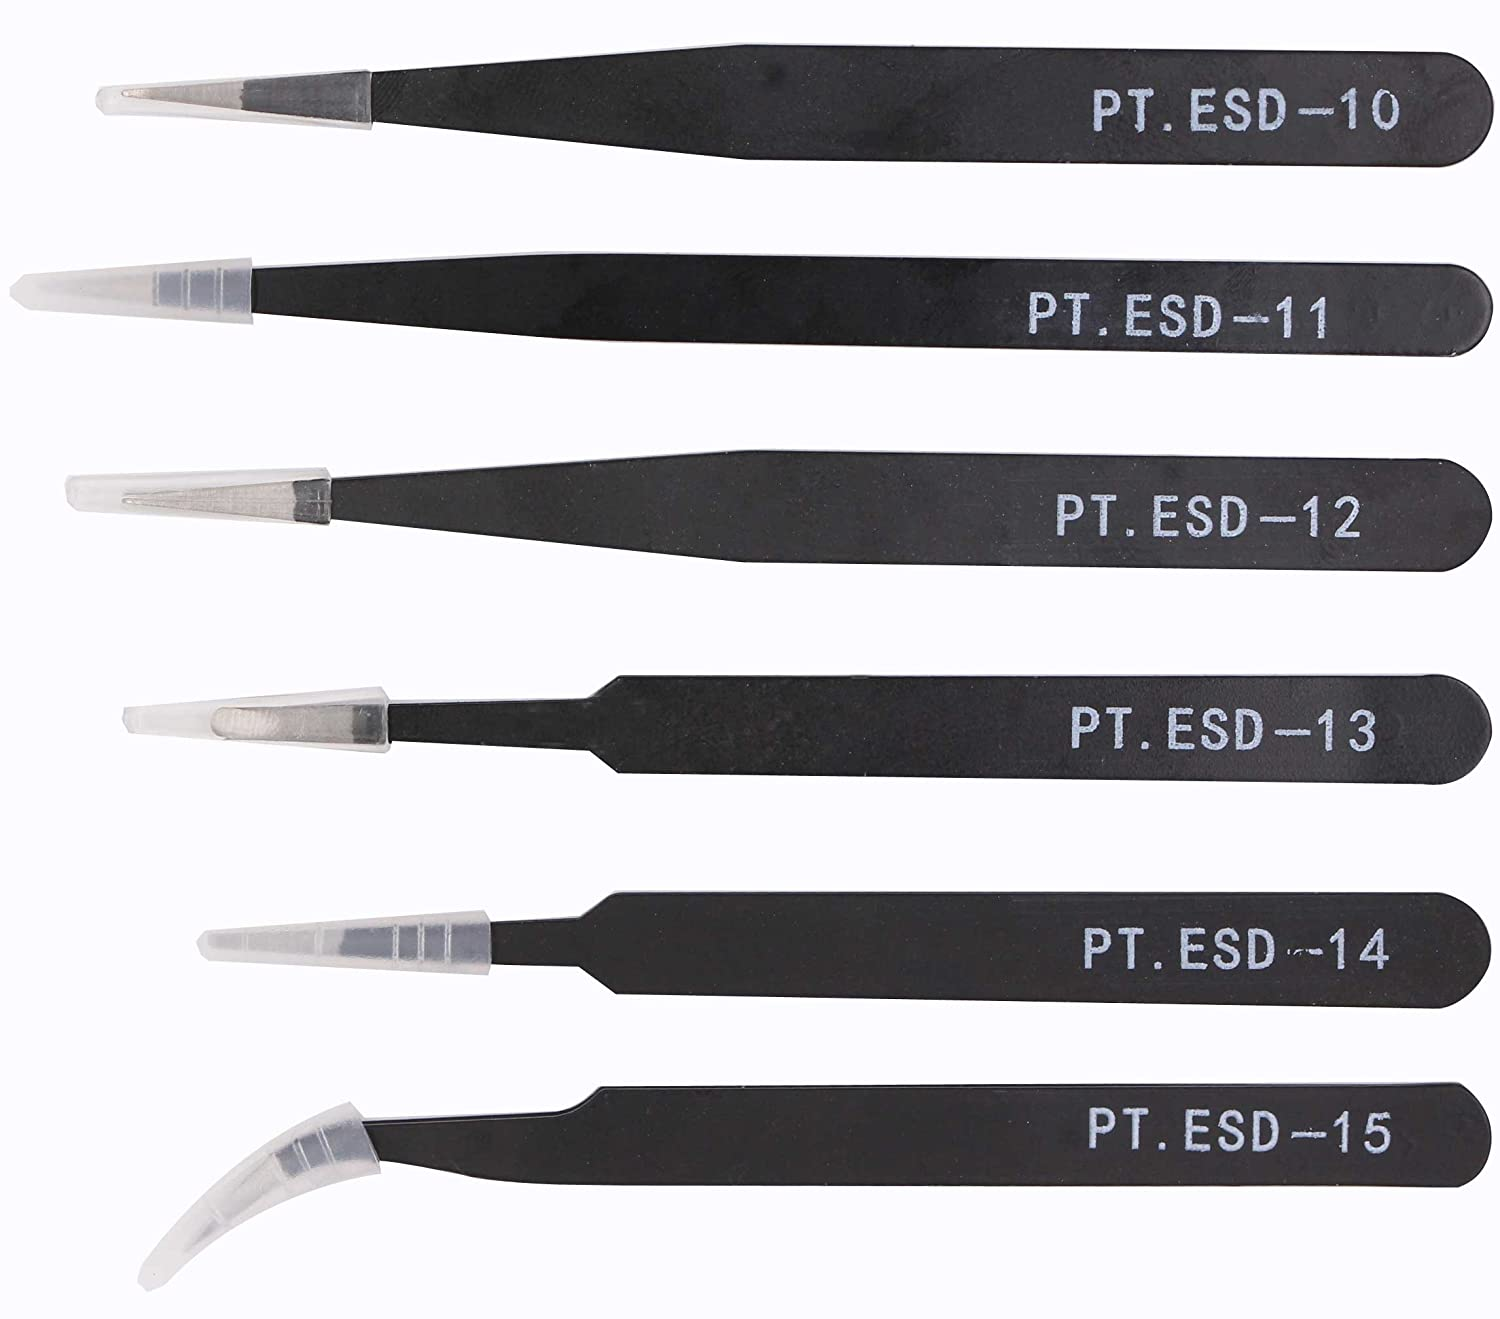 ESD Safe Tweezers Set 6 Piece Precision Anti Static Electronic Nipper Took Kits Stainless Steel Blunt Curved Straight Tips For Electronics Laboratory Work Hobby Bead Jewelry Craft Making